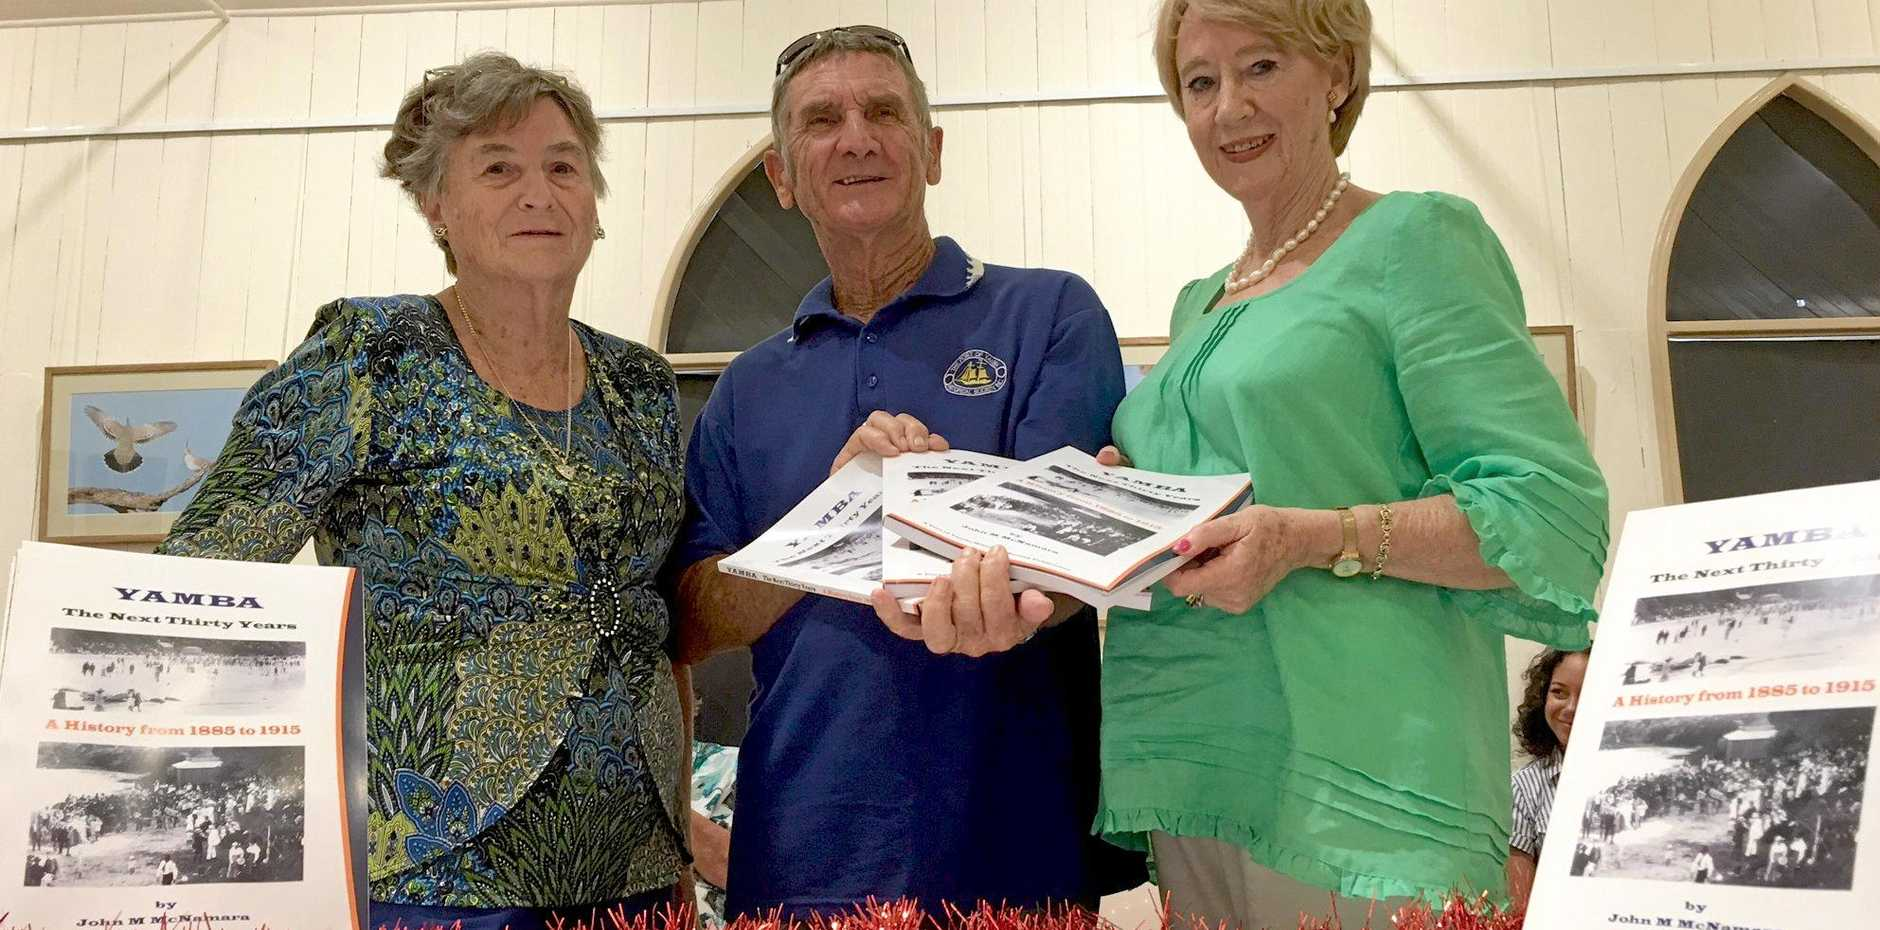 The Cox sisters of Grafton, Lorraine (left) and Patricia with author of of the book 'Yamba - The Next Thirty Years, John McNamara at the launch of the book at Yamba Museum.